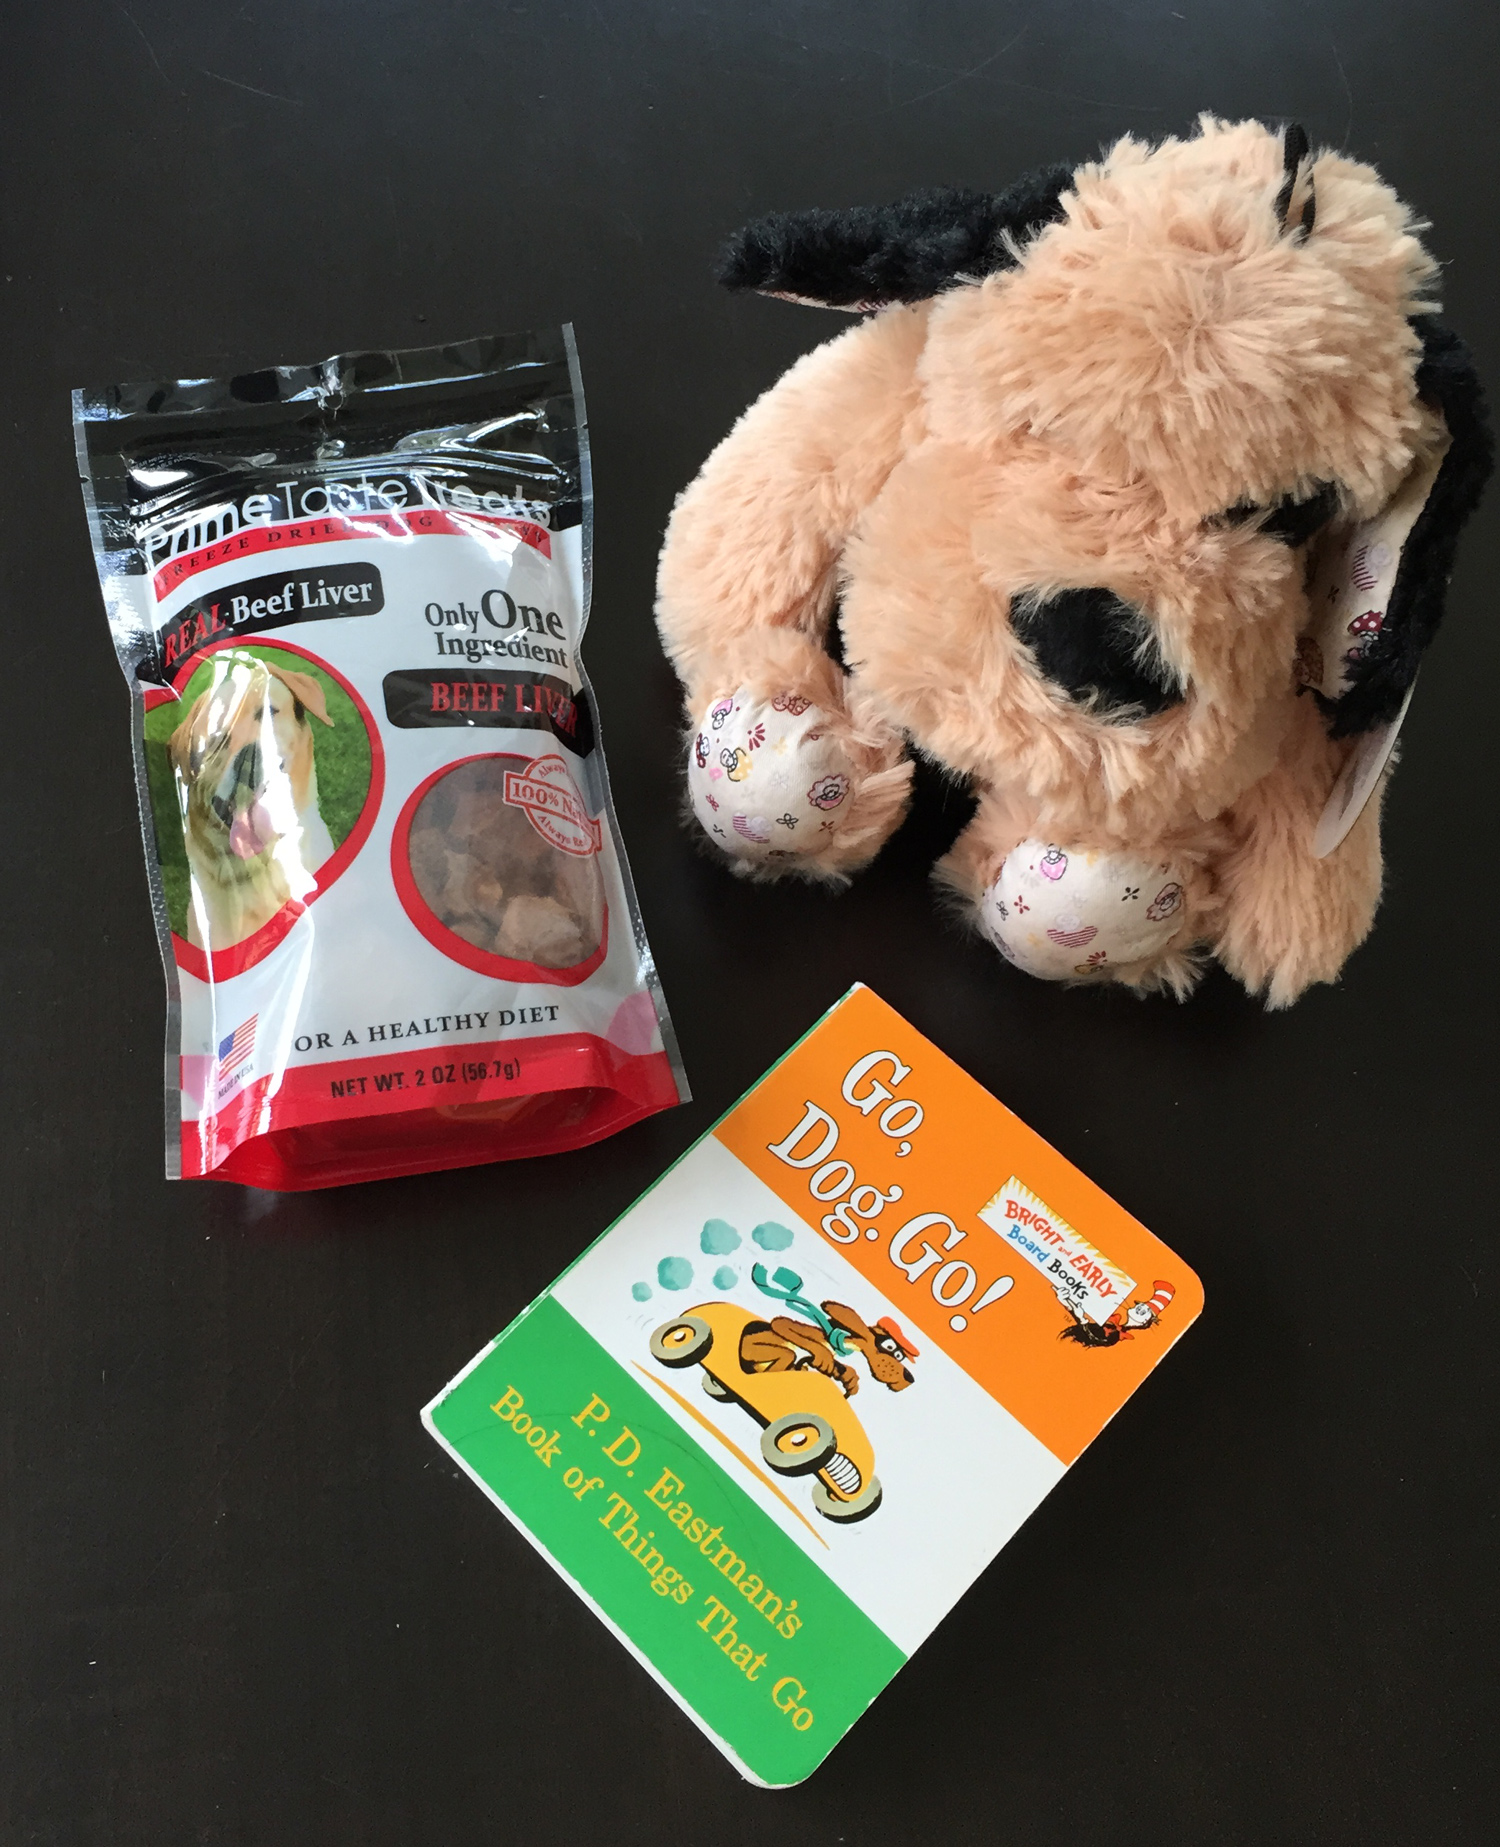 I could not resist the dog treats ($3.99) and stuffed animal ($4.99) from Home Goods. And this version of  Go, Dog. Go!  is half the size of the original version but it still ends with a huge dog party!